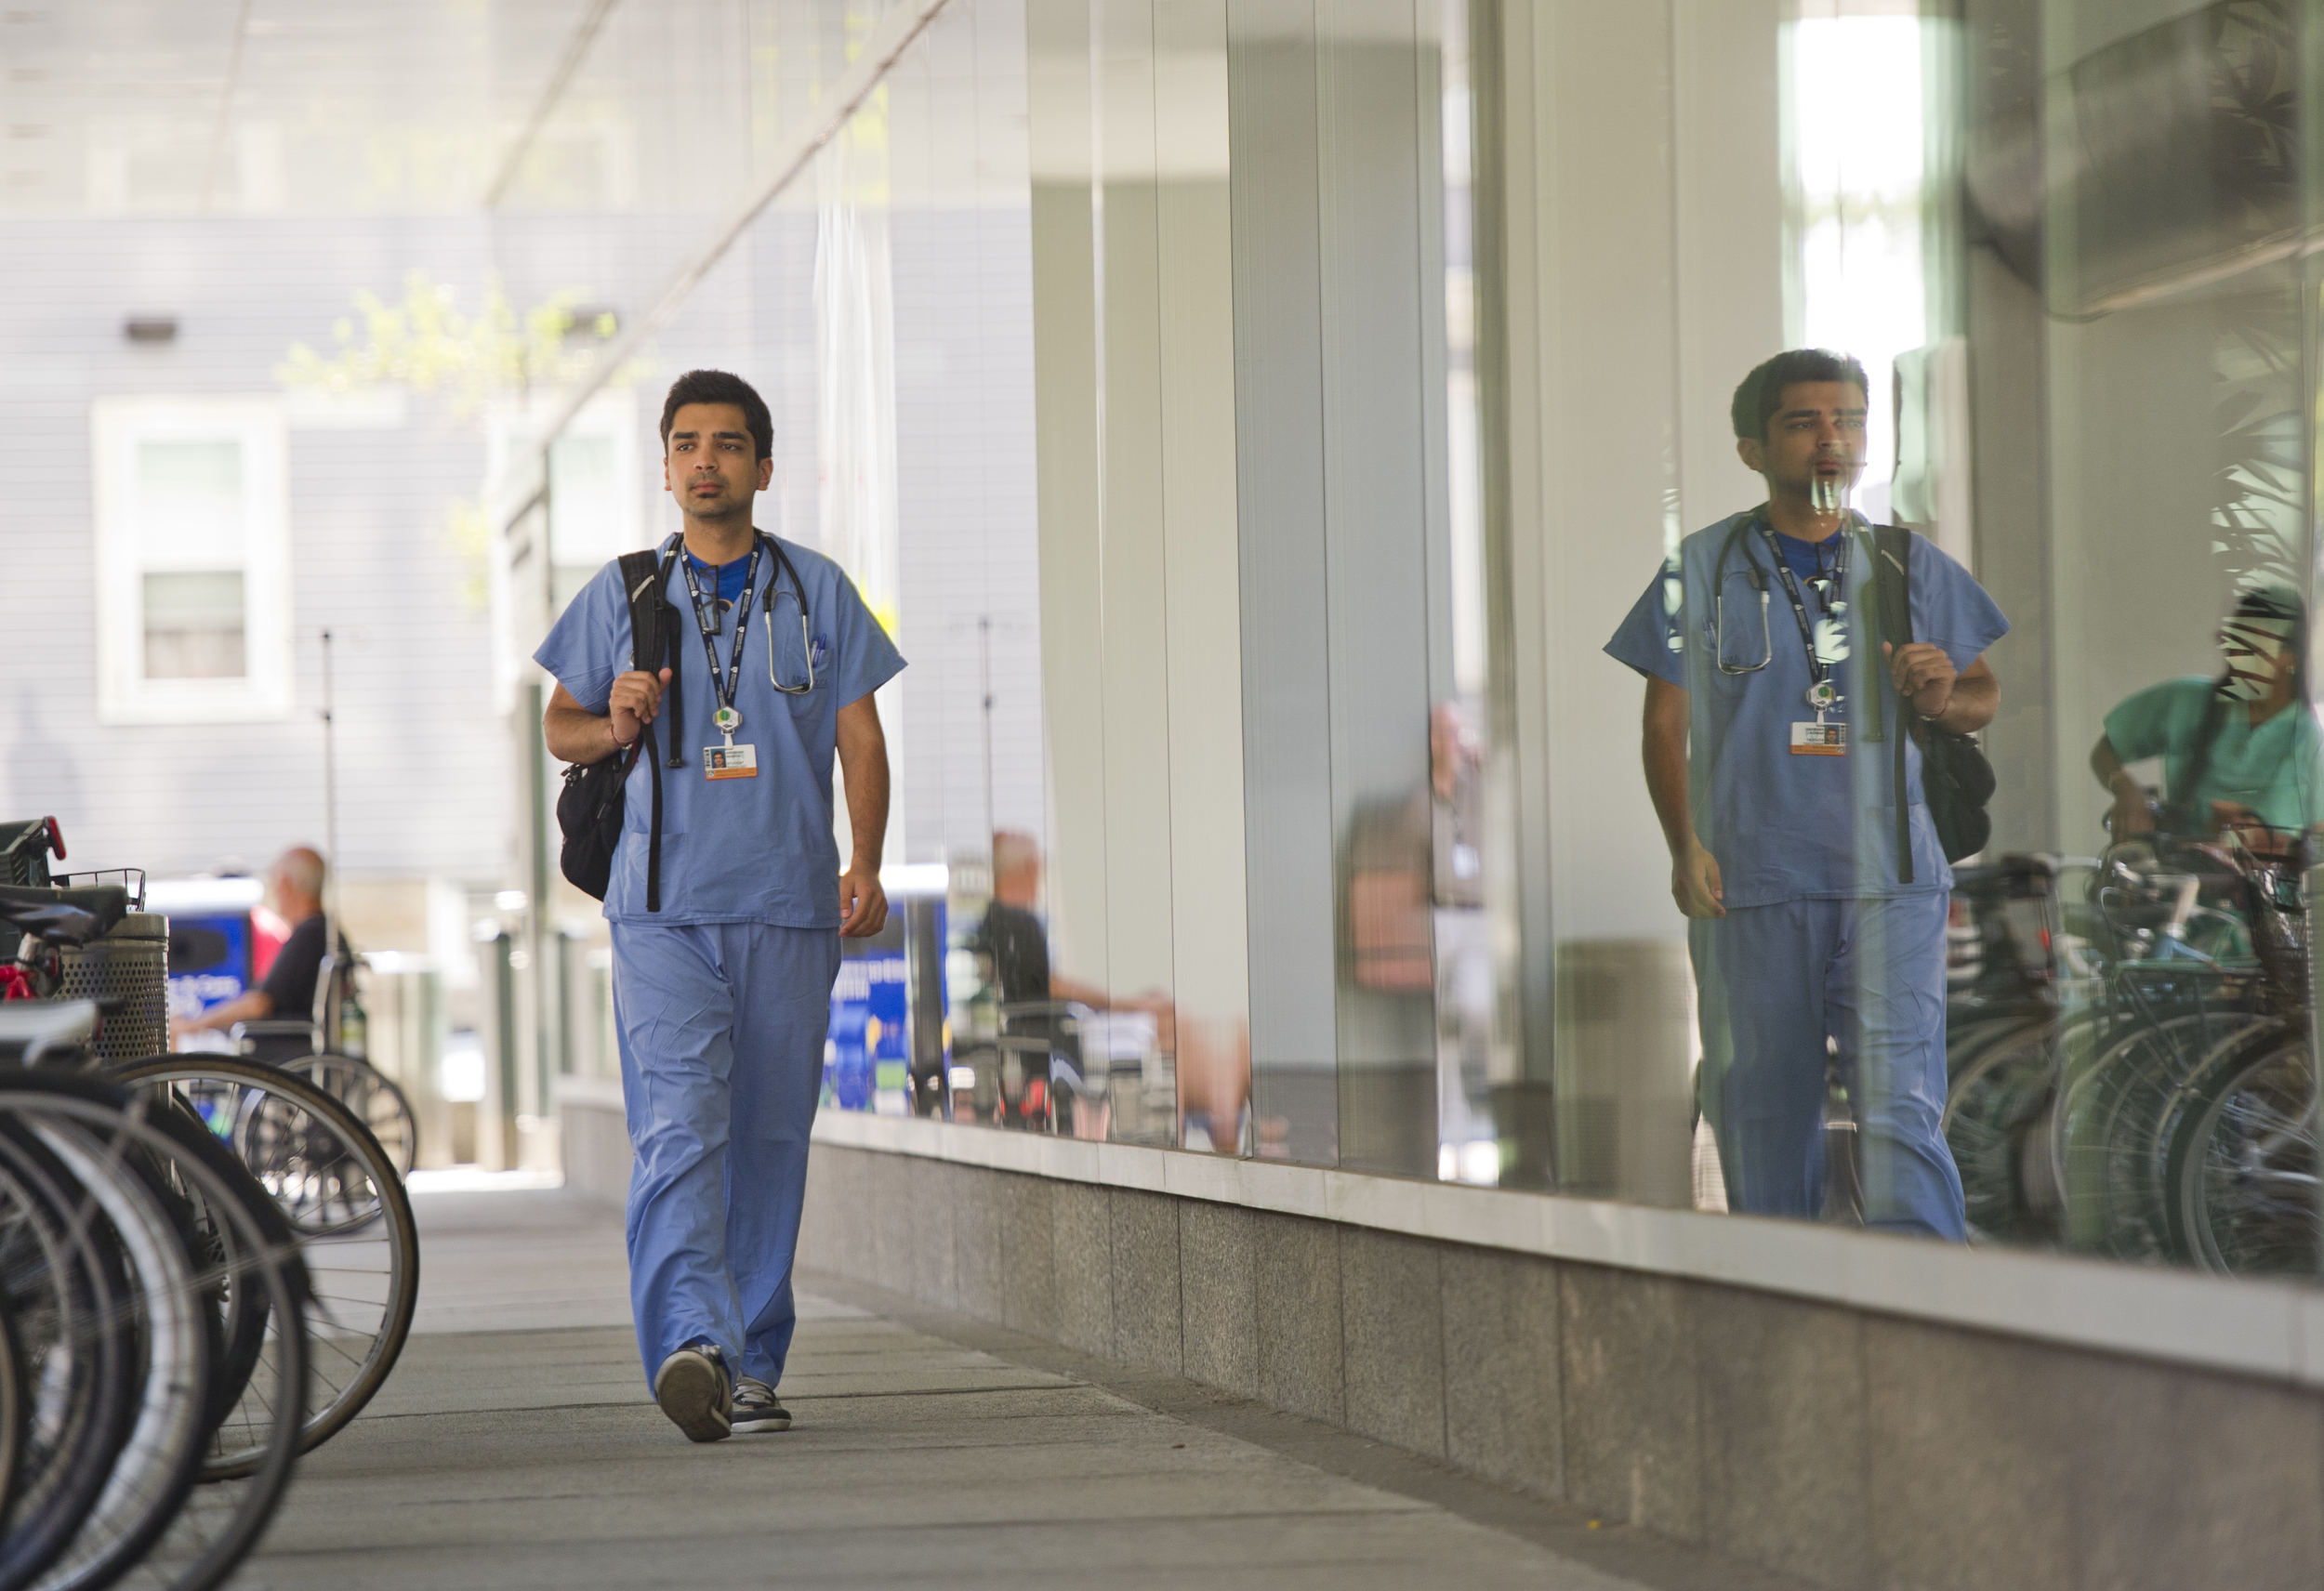 Anubhav Nangia (SAR,'15) spent his summer internship working at the Shapiro Cardiovascular Center at Brigham & Women's Hospital. Photo by Cydney Scott for Boston University Photograph